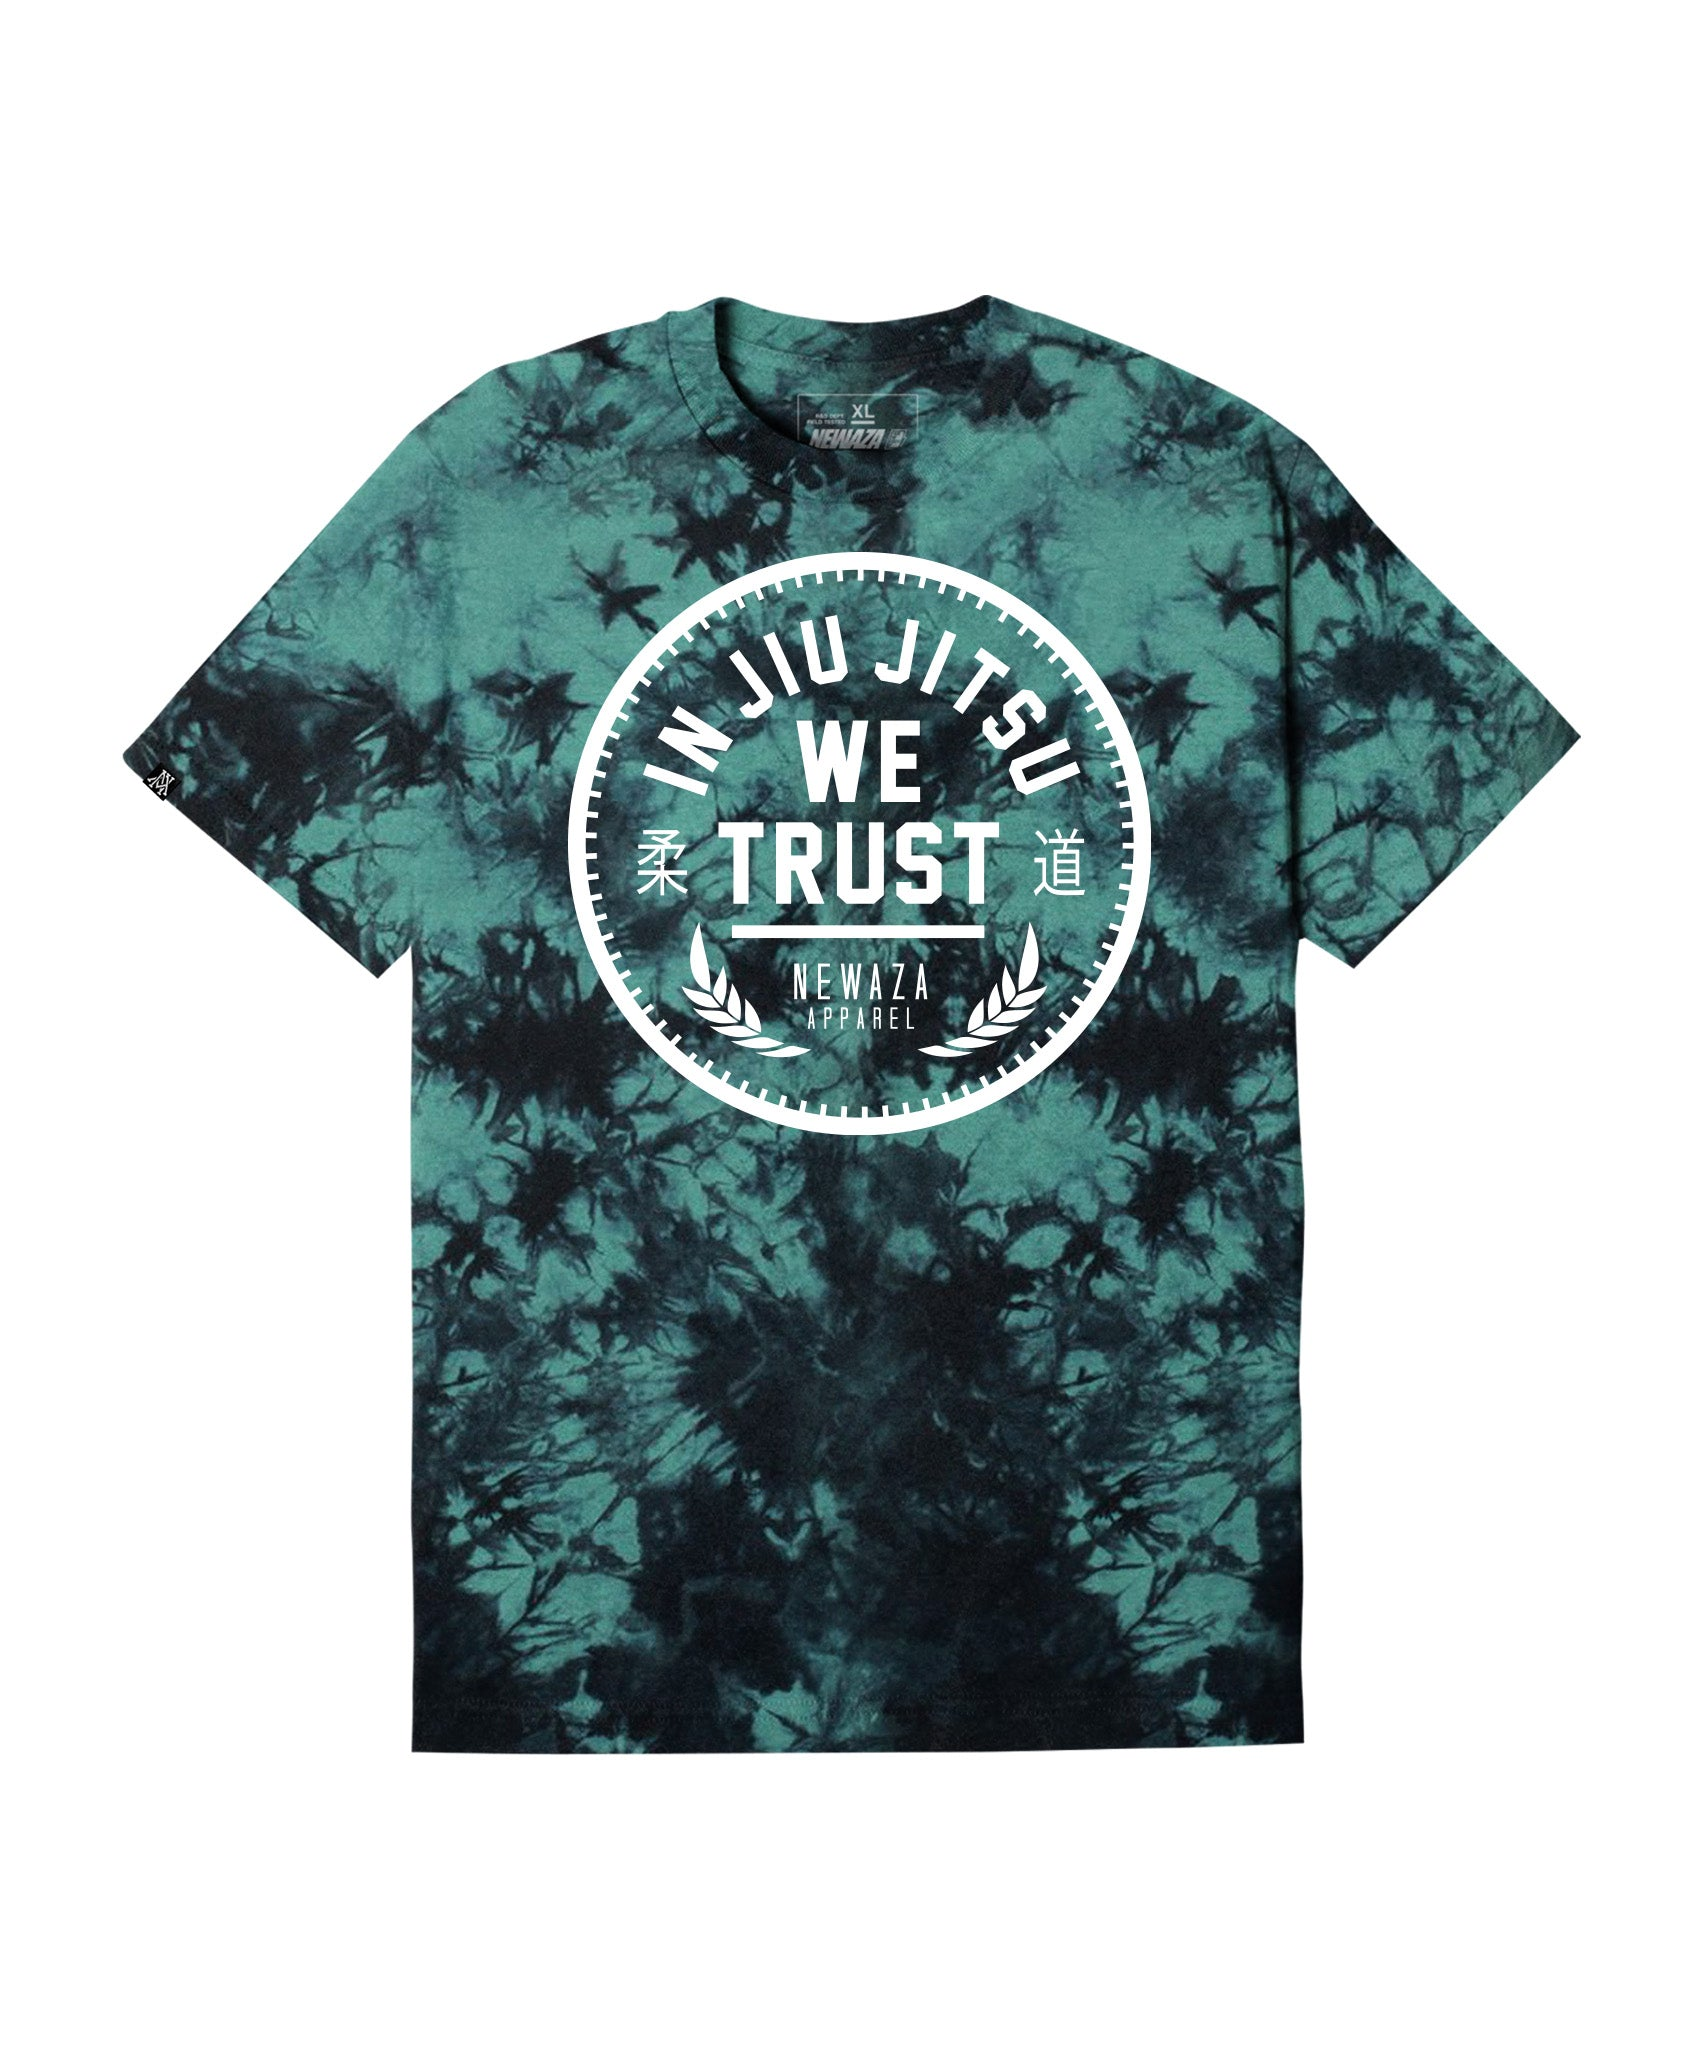 Dye In Jiu Jitsu We Trust Tee - Teal